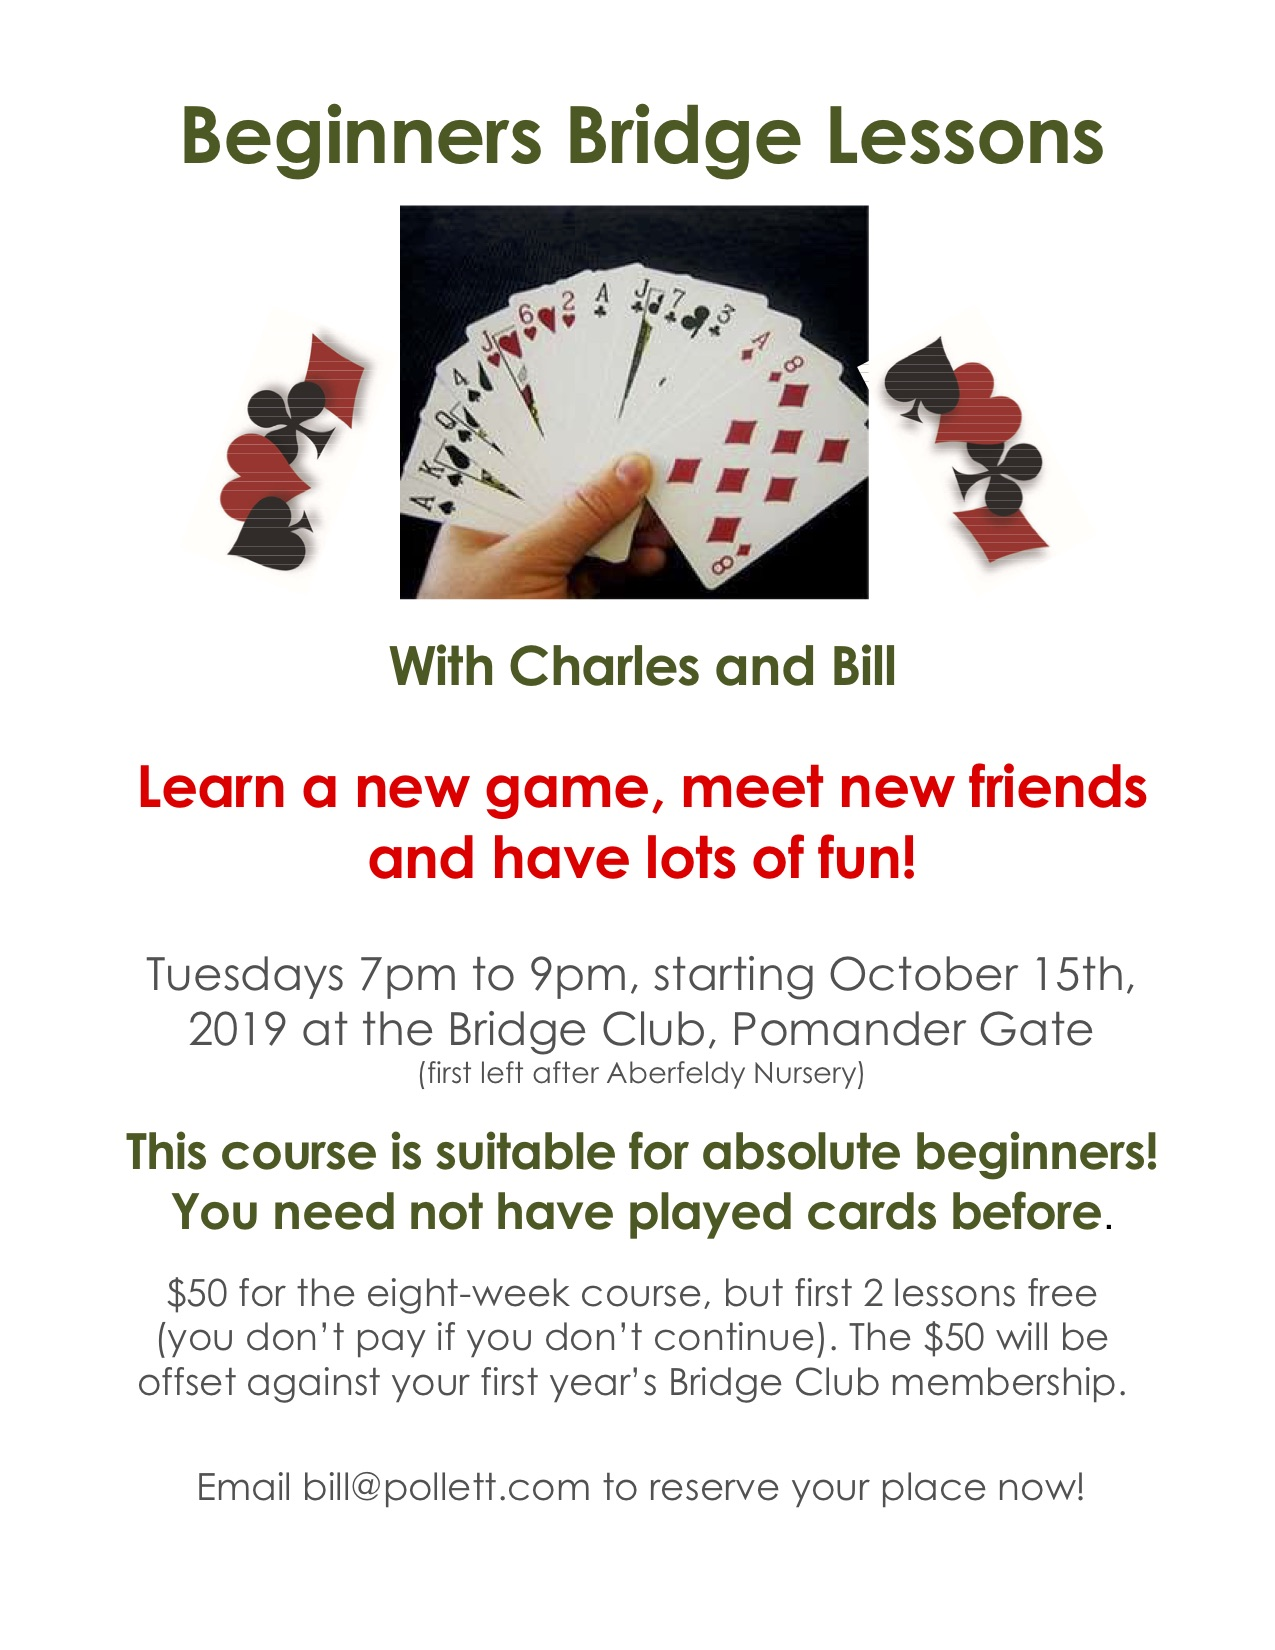 Beginners Bridge Lessons Oct 2019